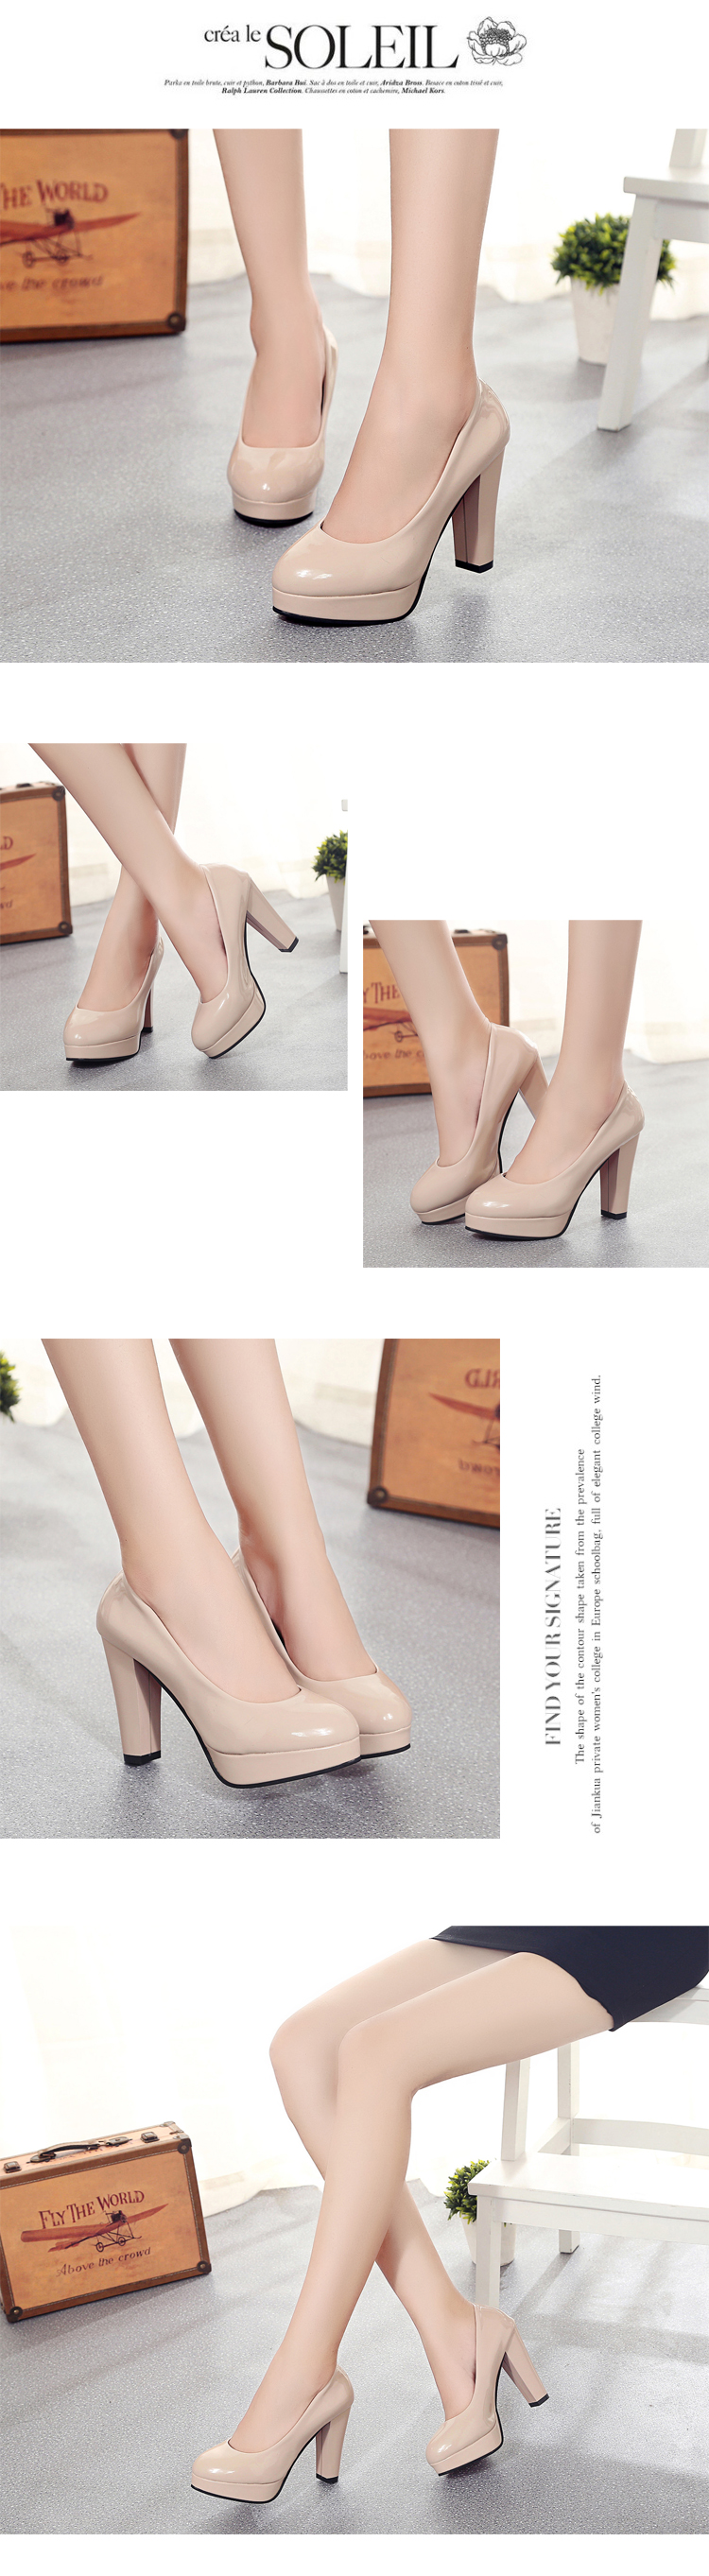 2018 Femmes Chaussures Bout Pointu 23